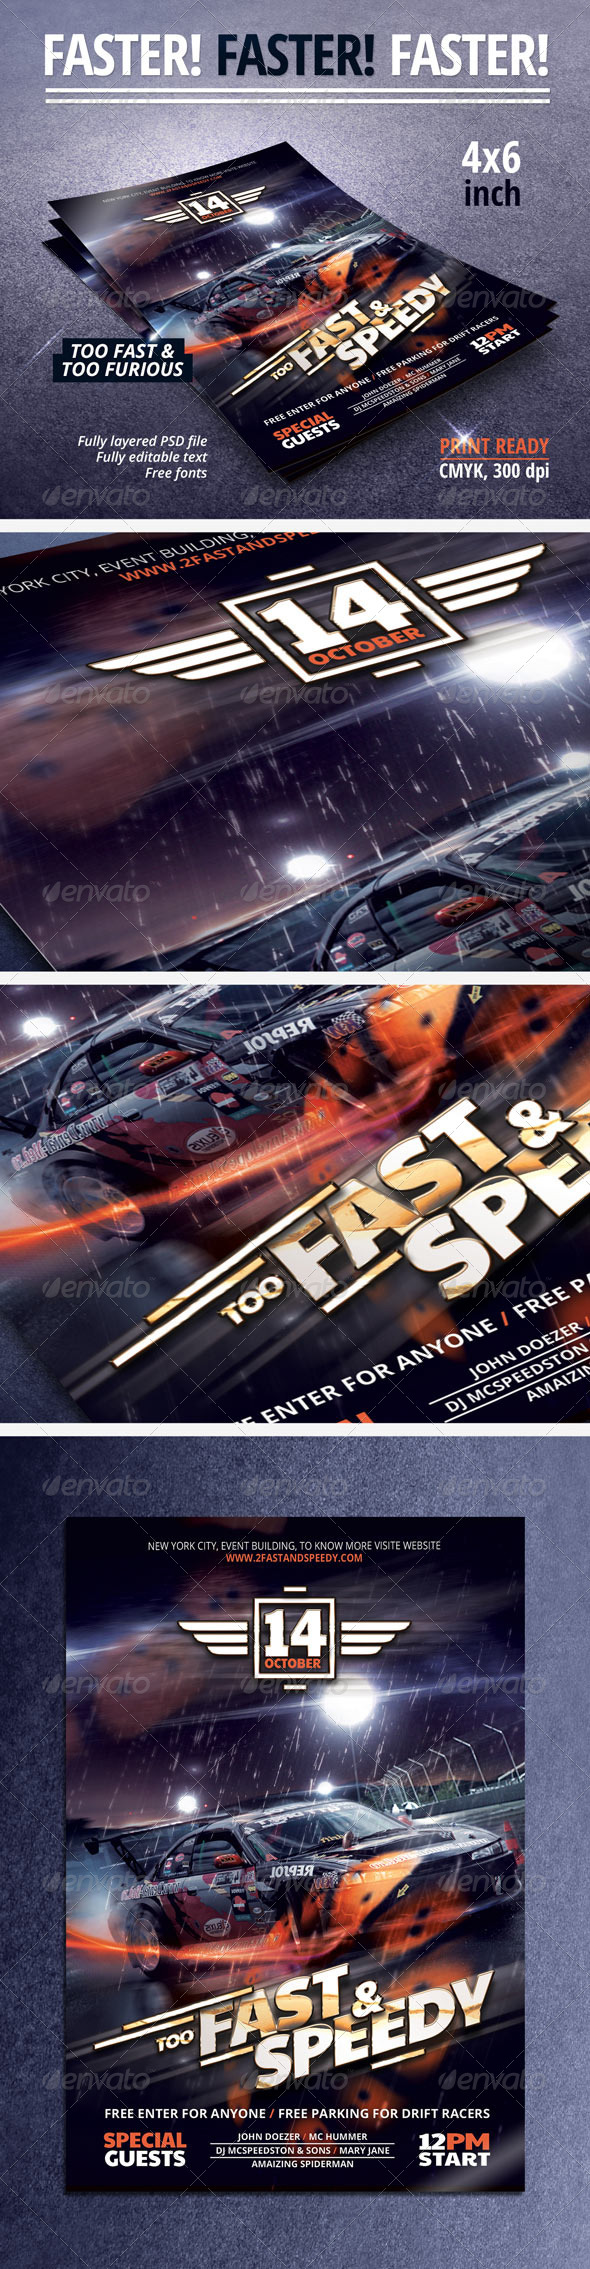 GraphicRiver Fast & Speedy Party Flyer 5625546